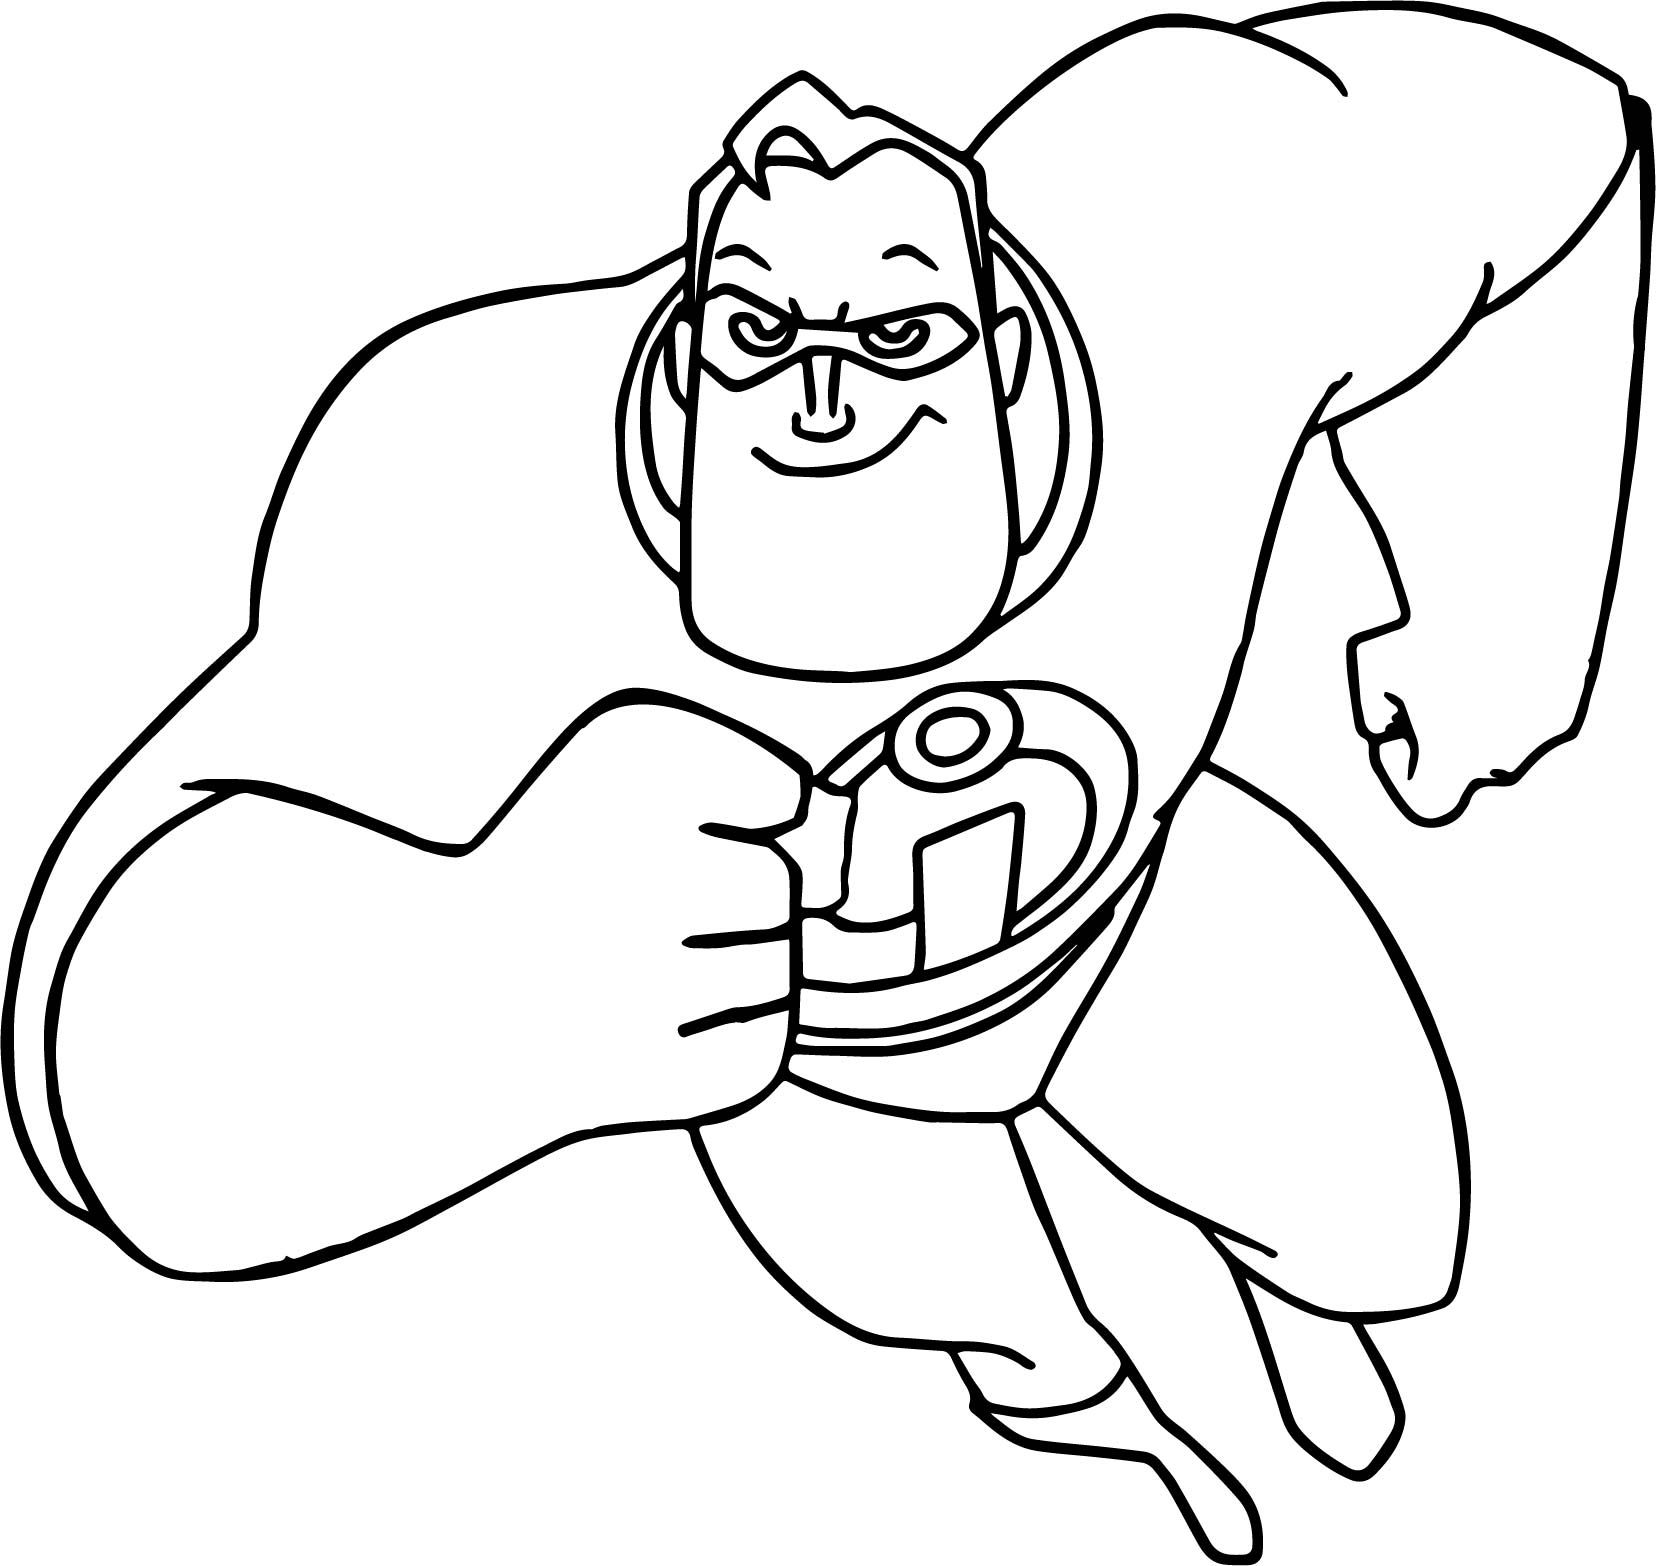 Cool The Incredibles Running Man Coloring Pages Superhero Coloring Pages Disney Coloring Pages Cartoon Coloring Pages